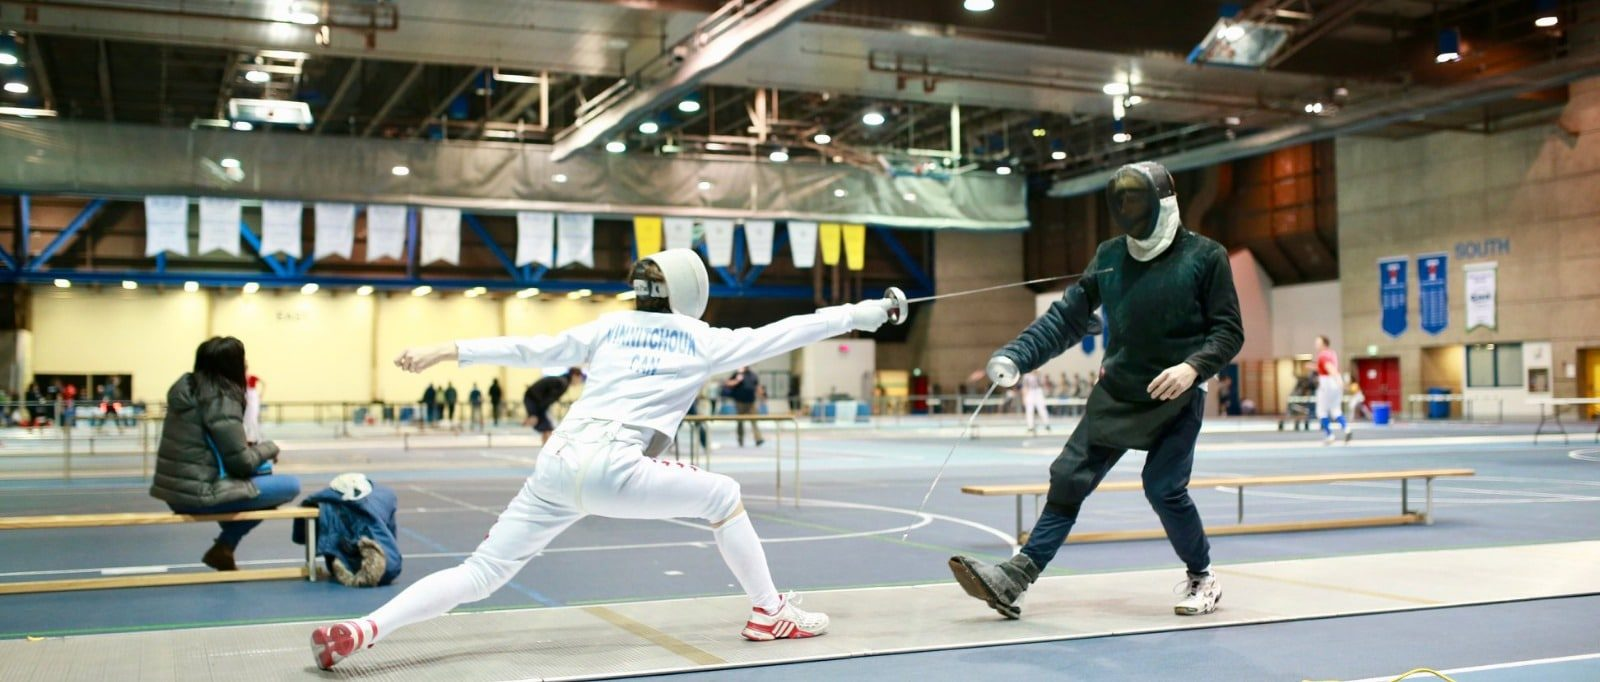 Saint Lucia Island Fencing looking for foil coach for two-week training camp